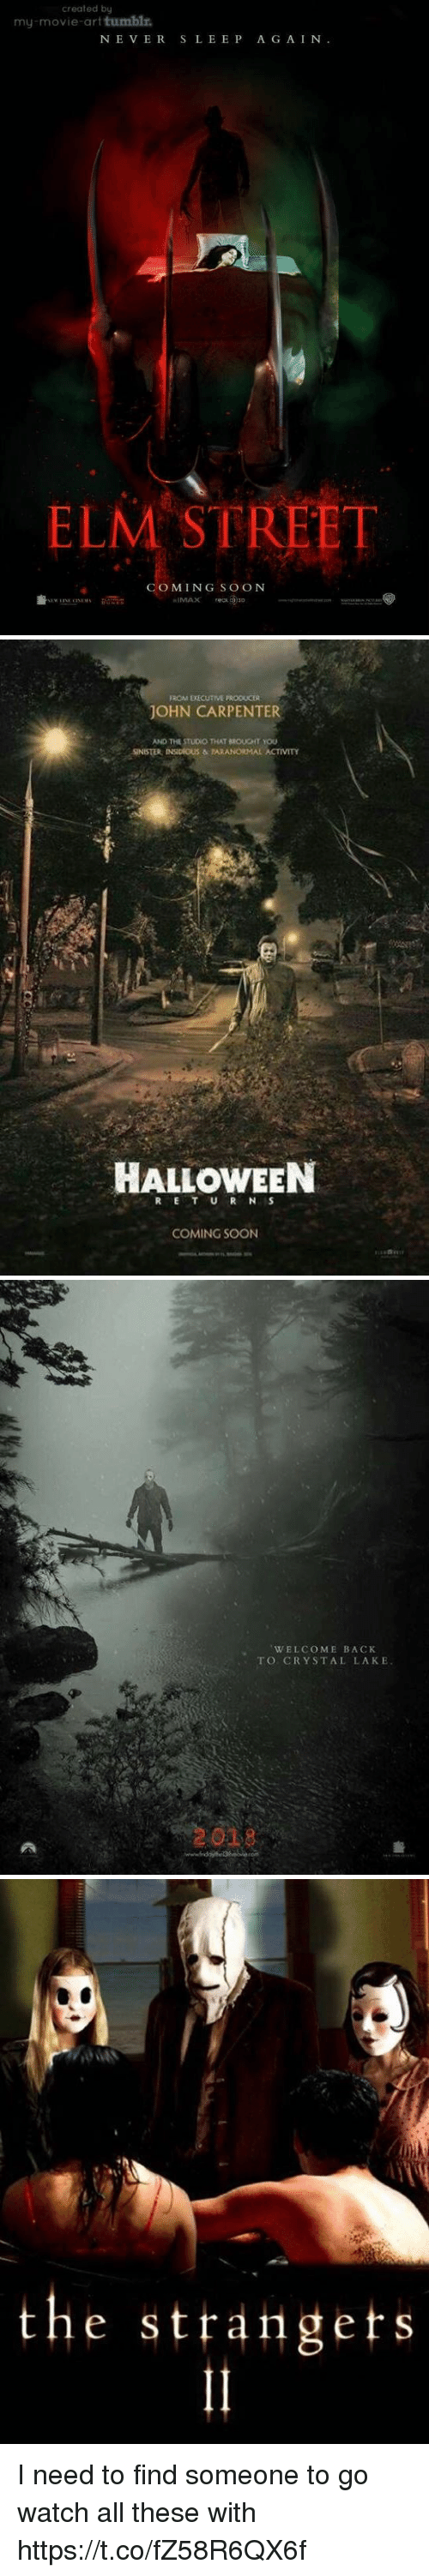 insidious: created by  my-movie-art tumblr  NE VERSLEEP A G AIN.  ELM STREET  COMING SO oN   ROM EXECUTIVE PRODUCER  JOHN CARPENTER  AND THE STUDIO THAT BROUGHT YOU  SINISTER INSIDIOUS & TARANORMAL ACTIVITY  HALLOWEEN  COMING SOON   WELCOME BACK  TO CRYSTAL LAKE  2029   the strangets  1 I need to find someone to go watch all these with https://t.co/fZ58R6QX6f